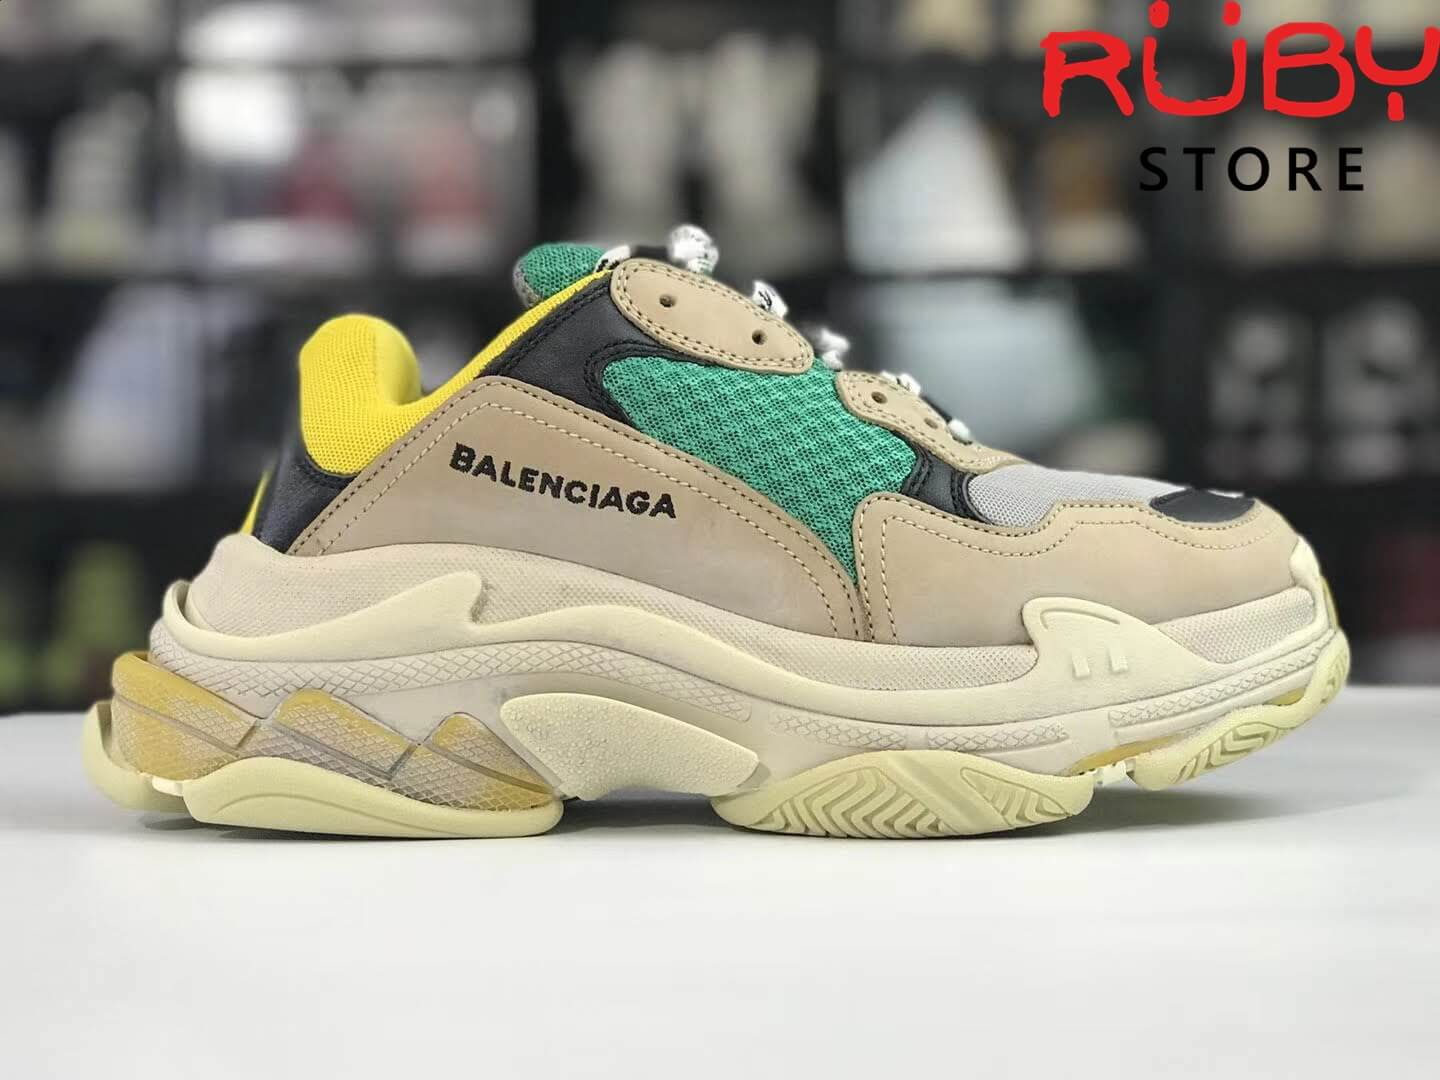 giày-balenciaga-triple-s-replica-11-best-like-authentic-99 (34)